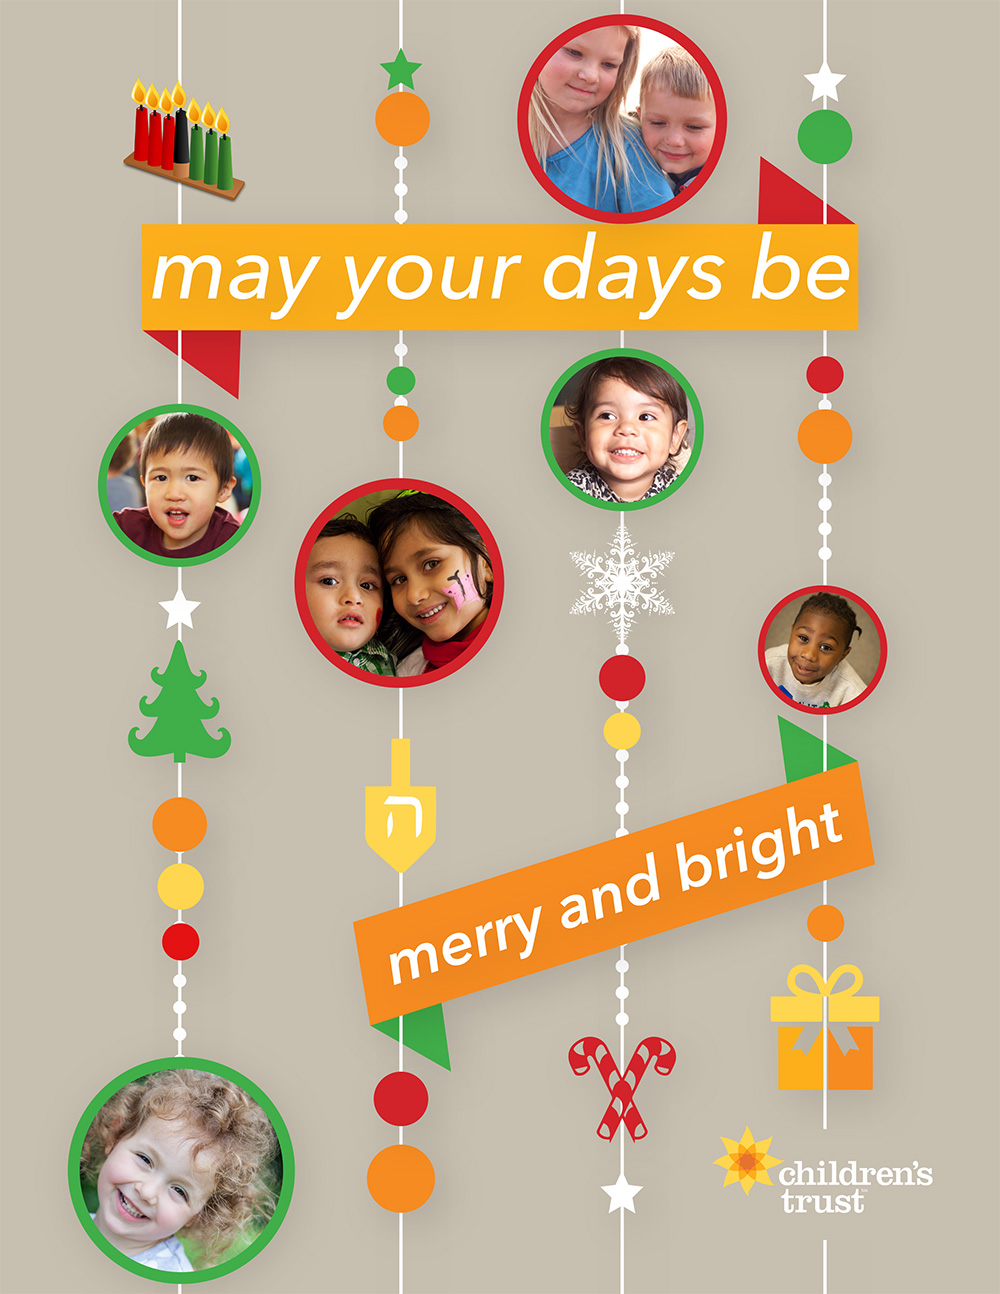 may your days be merry and bright!